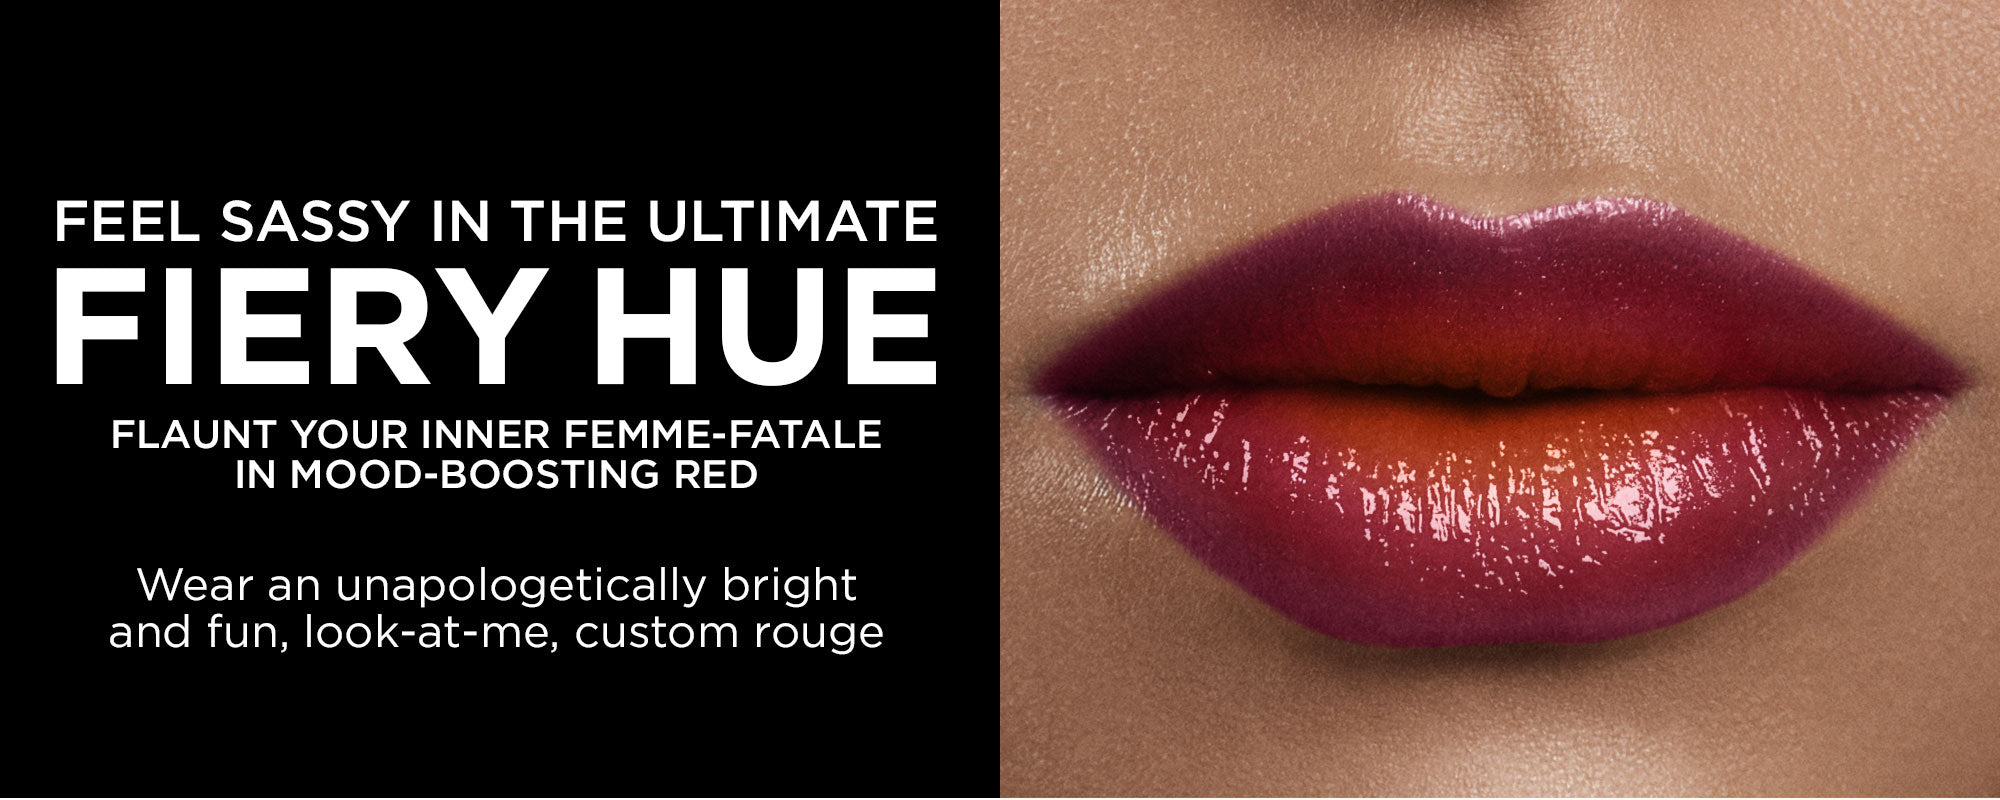 Feel Sassy in the Ultimate Fiery Hue